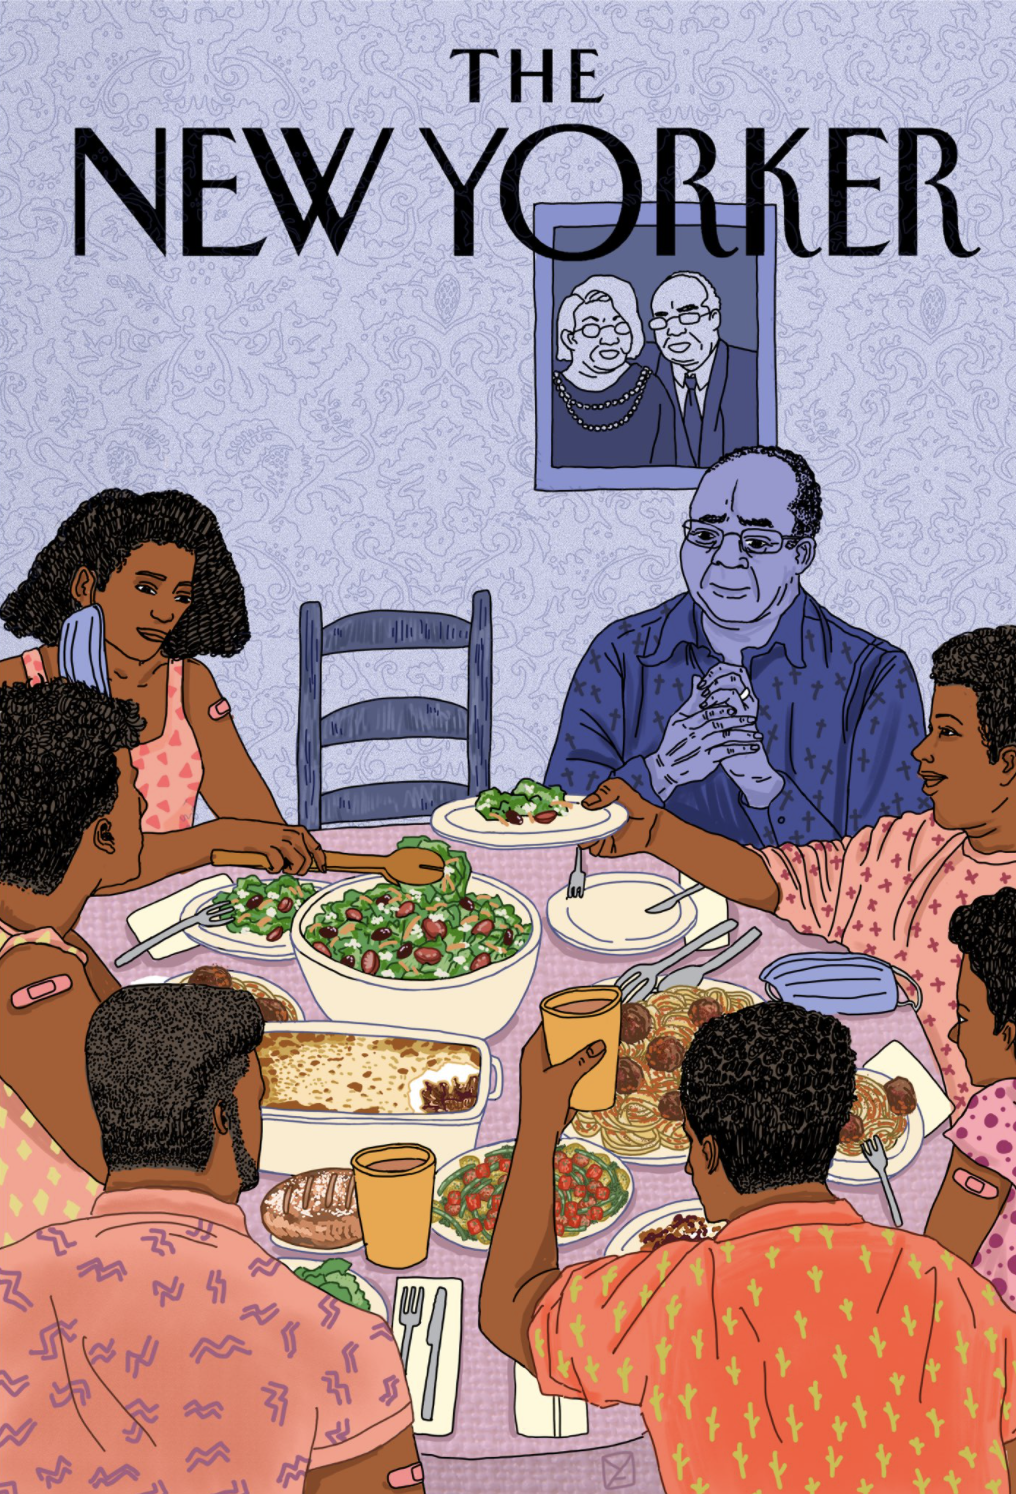 Illustrated cover of The New Yorker featuring a black family sitting down to dinner after the pandemic. There is an empty chair.